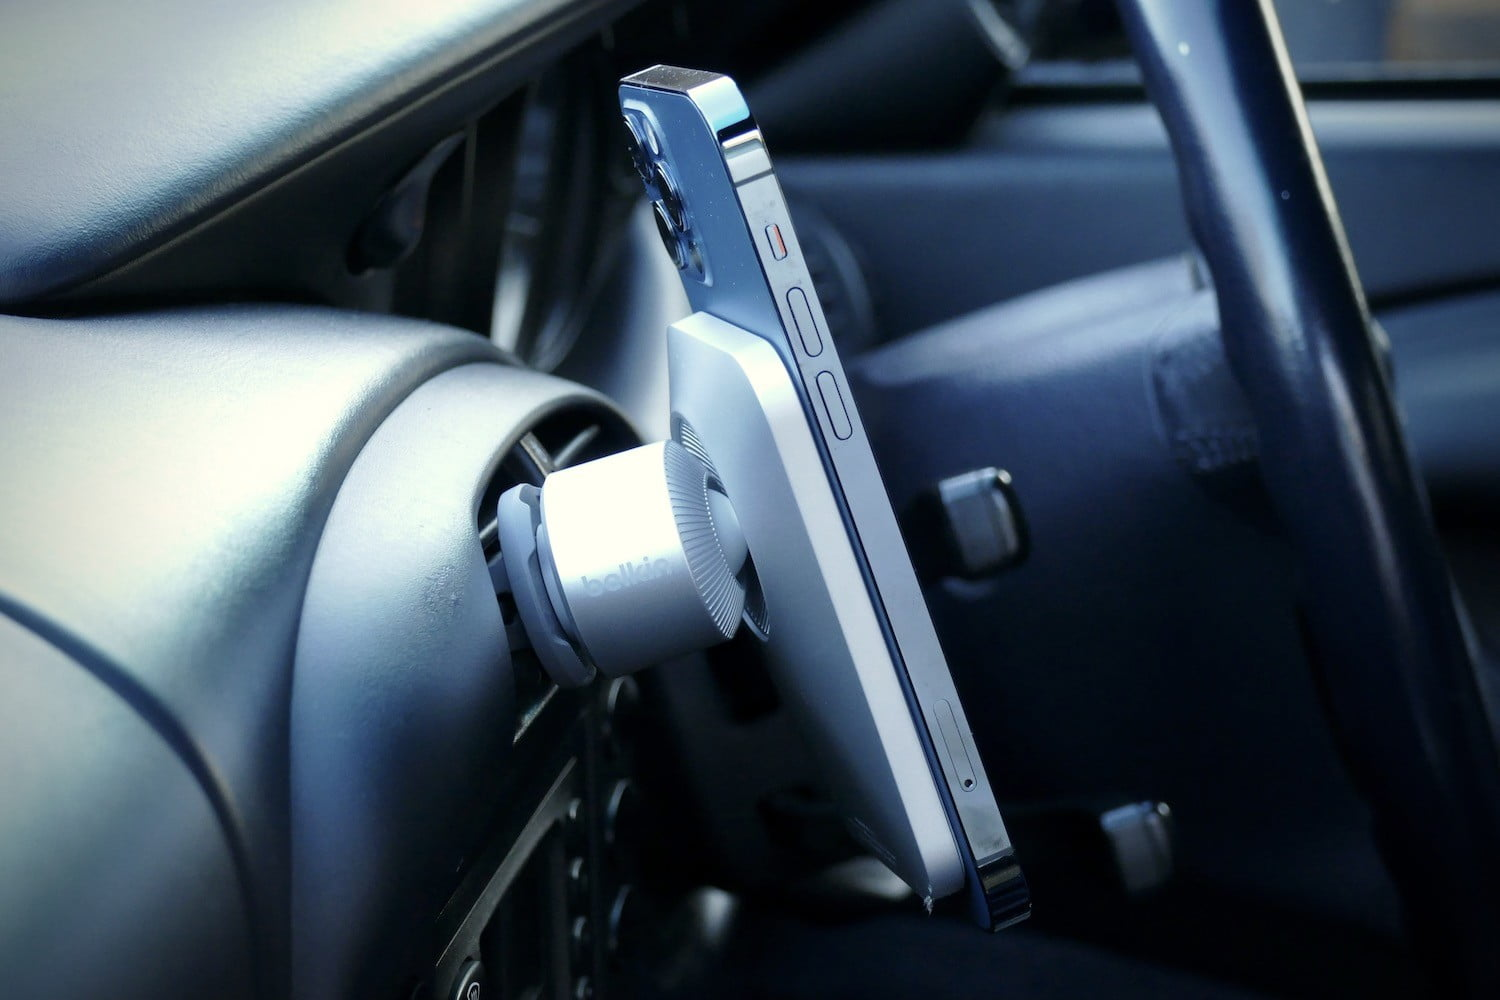 belkin magsafe car vent mount pro hands on features price photos release date side with phone